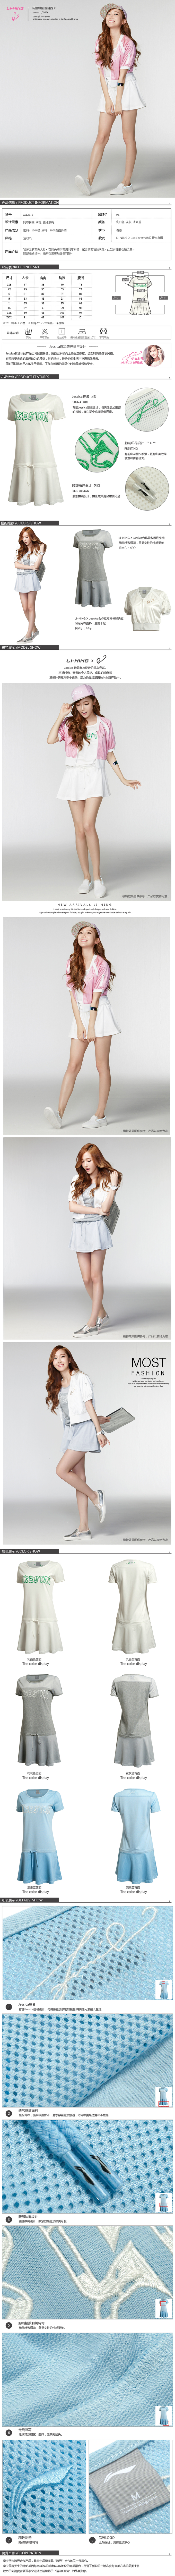 [140704] Jessica (SNSD) New Picture for Li-Ning Sport CF [16]